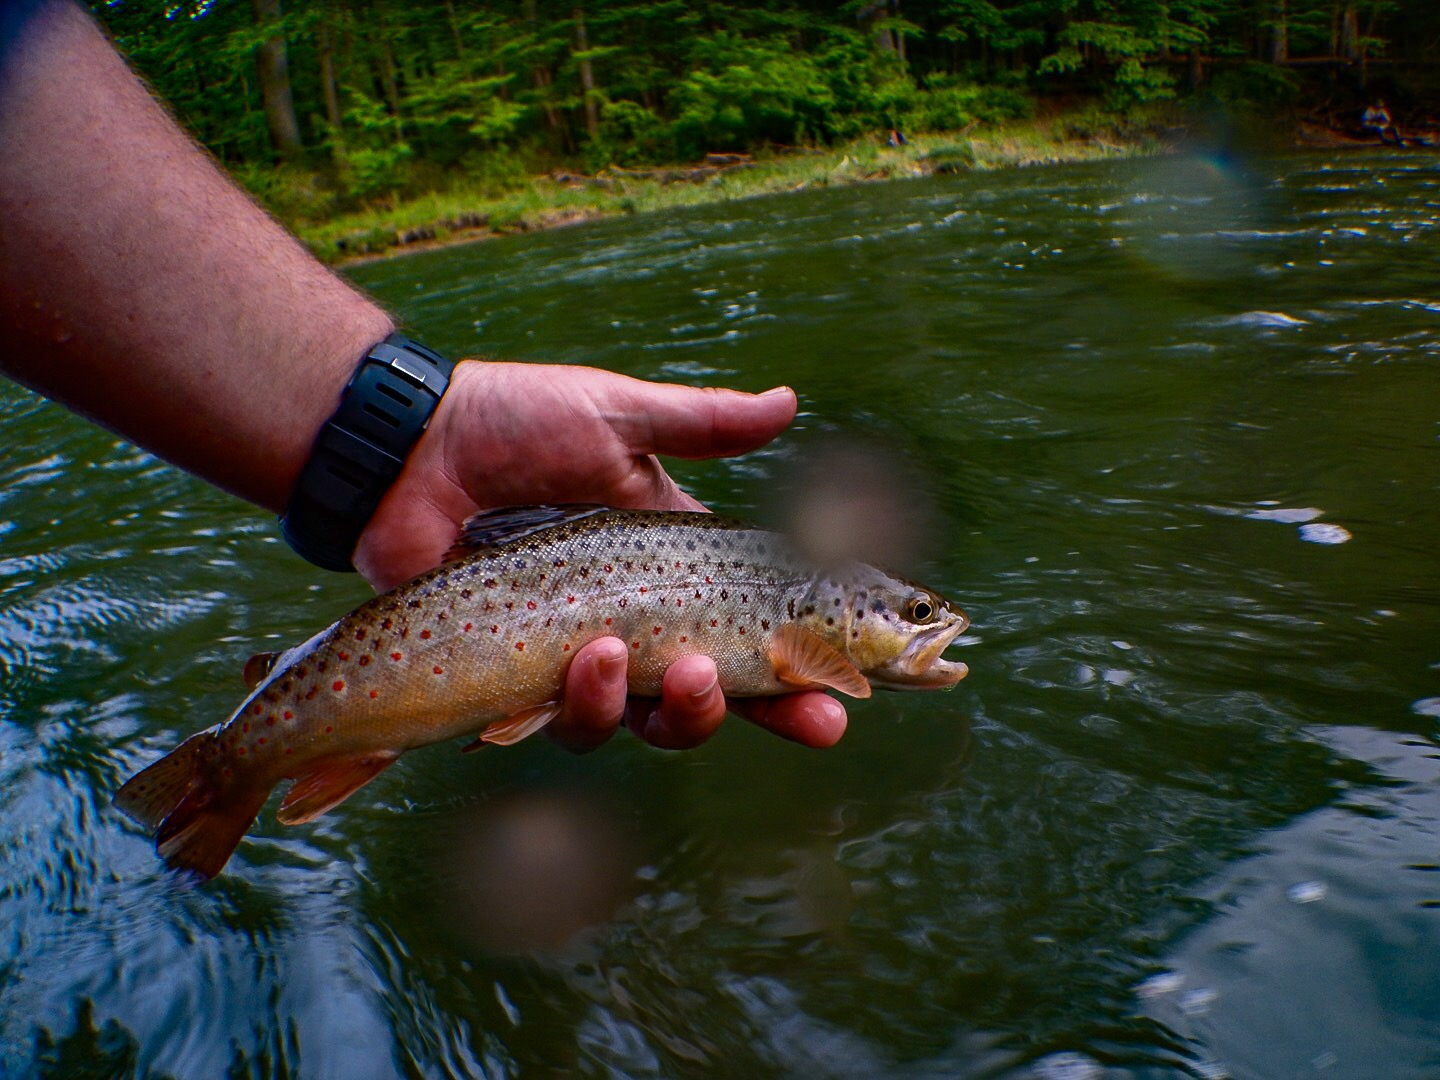 Pa fly fish spring jam 2017 keystone fly guides for Pa fish for free days 2017